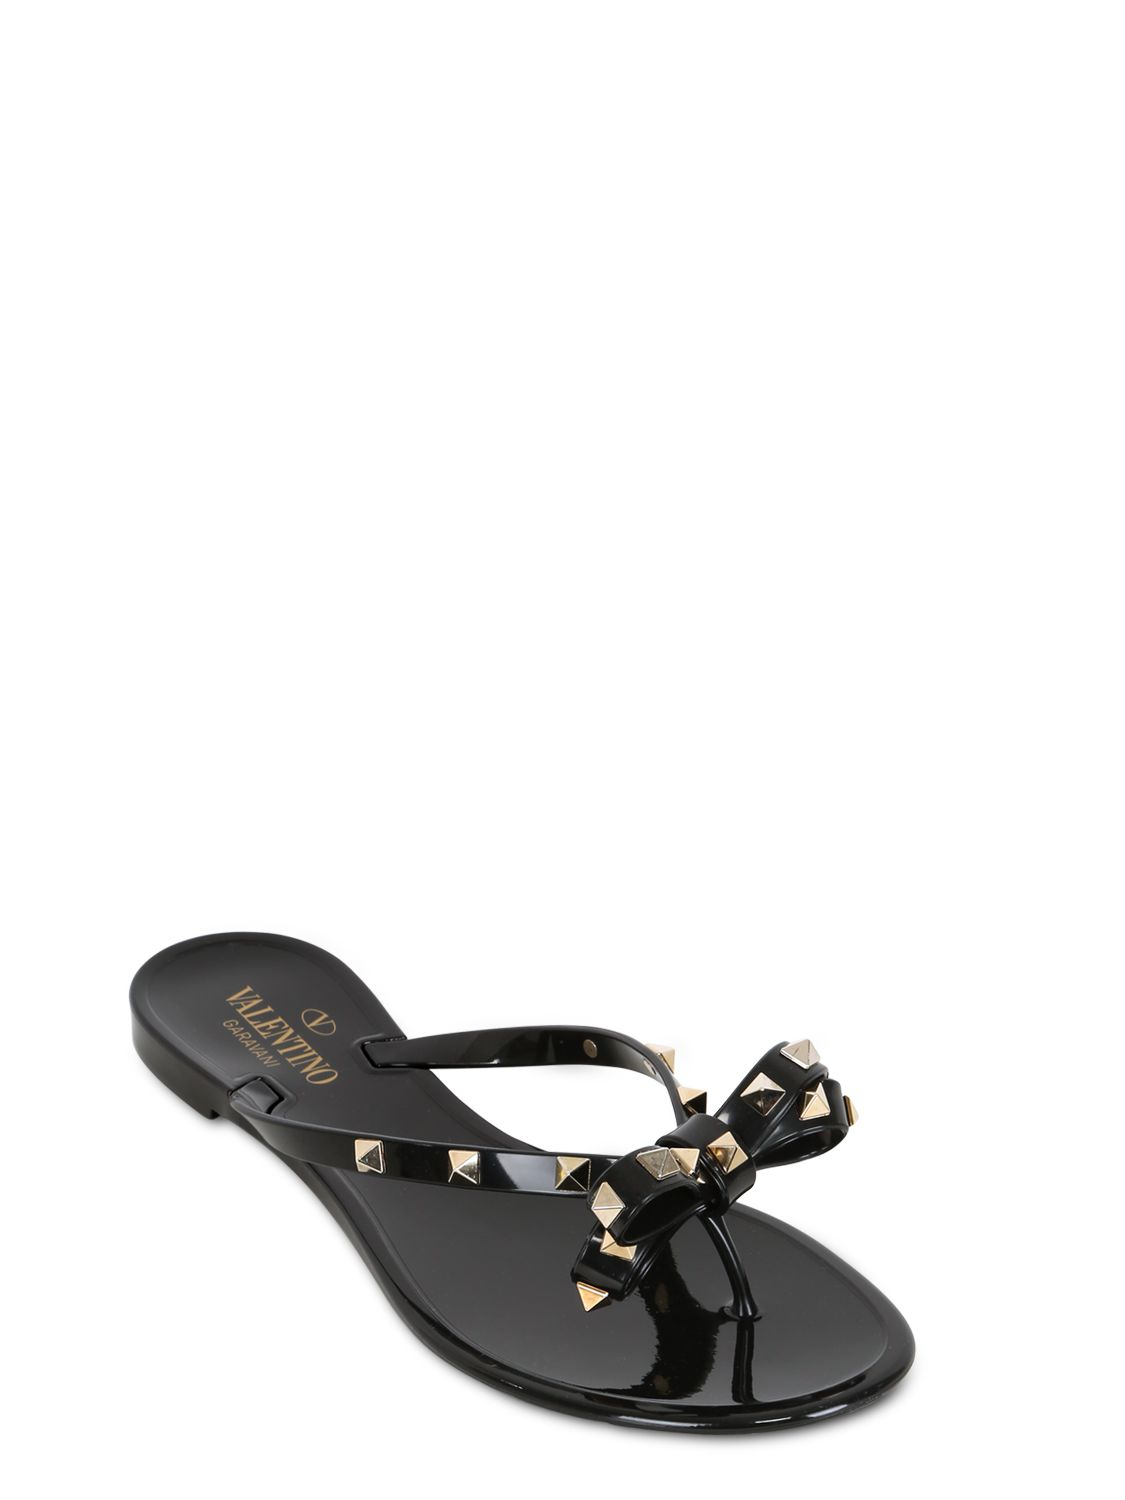 b51a546aab521c Lyst - Valentino Rubber Studded Flip Flops in Black